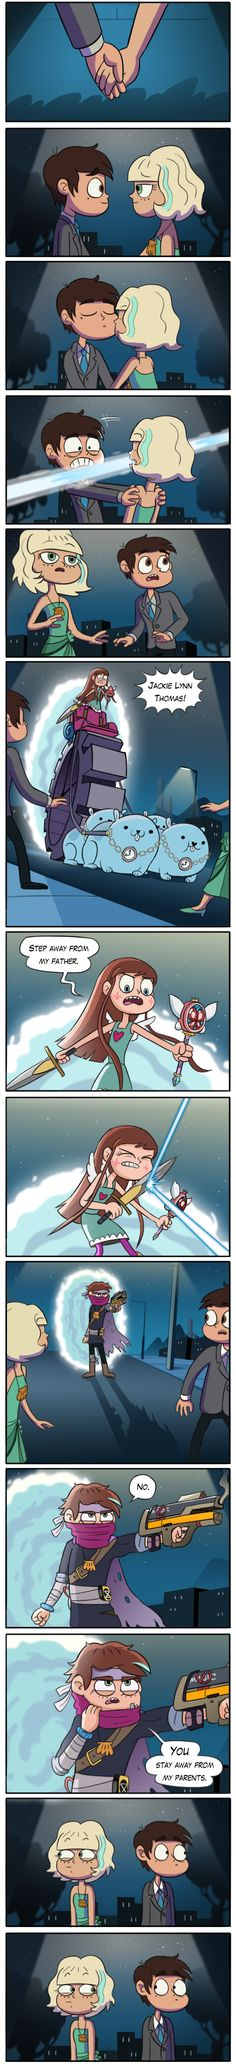 Star vs The Forces of evil - Ship war au part 1